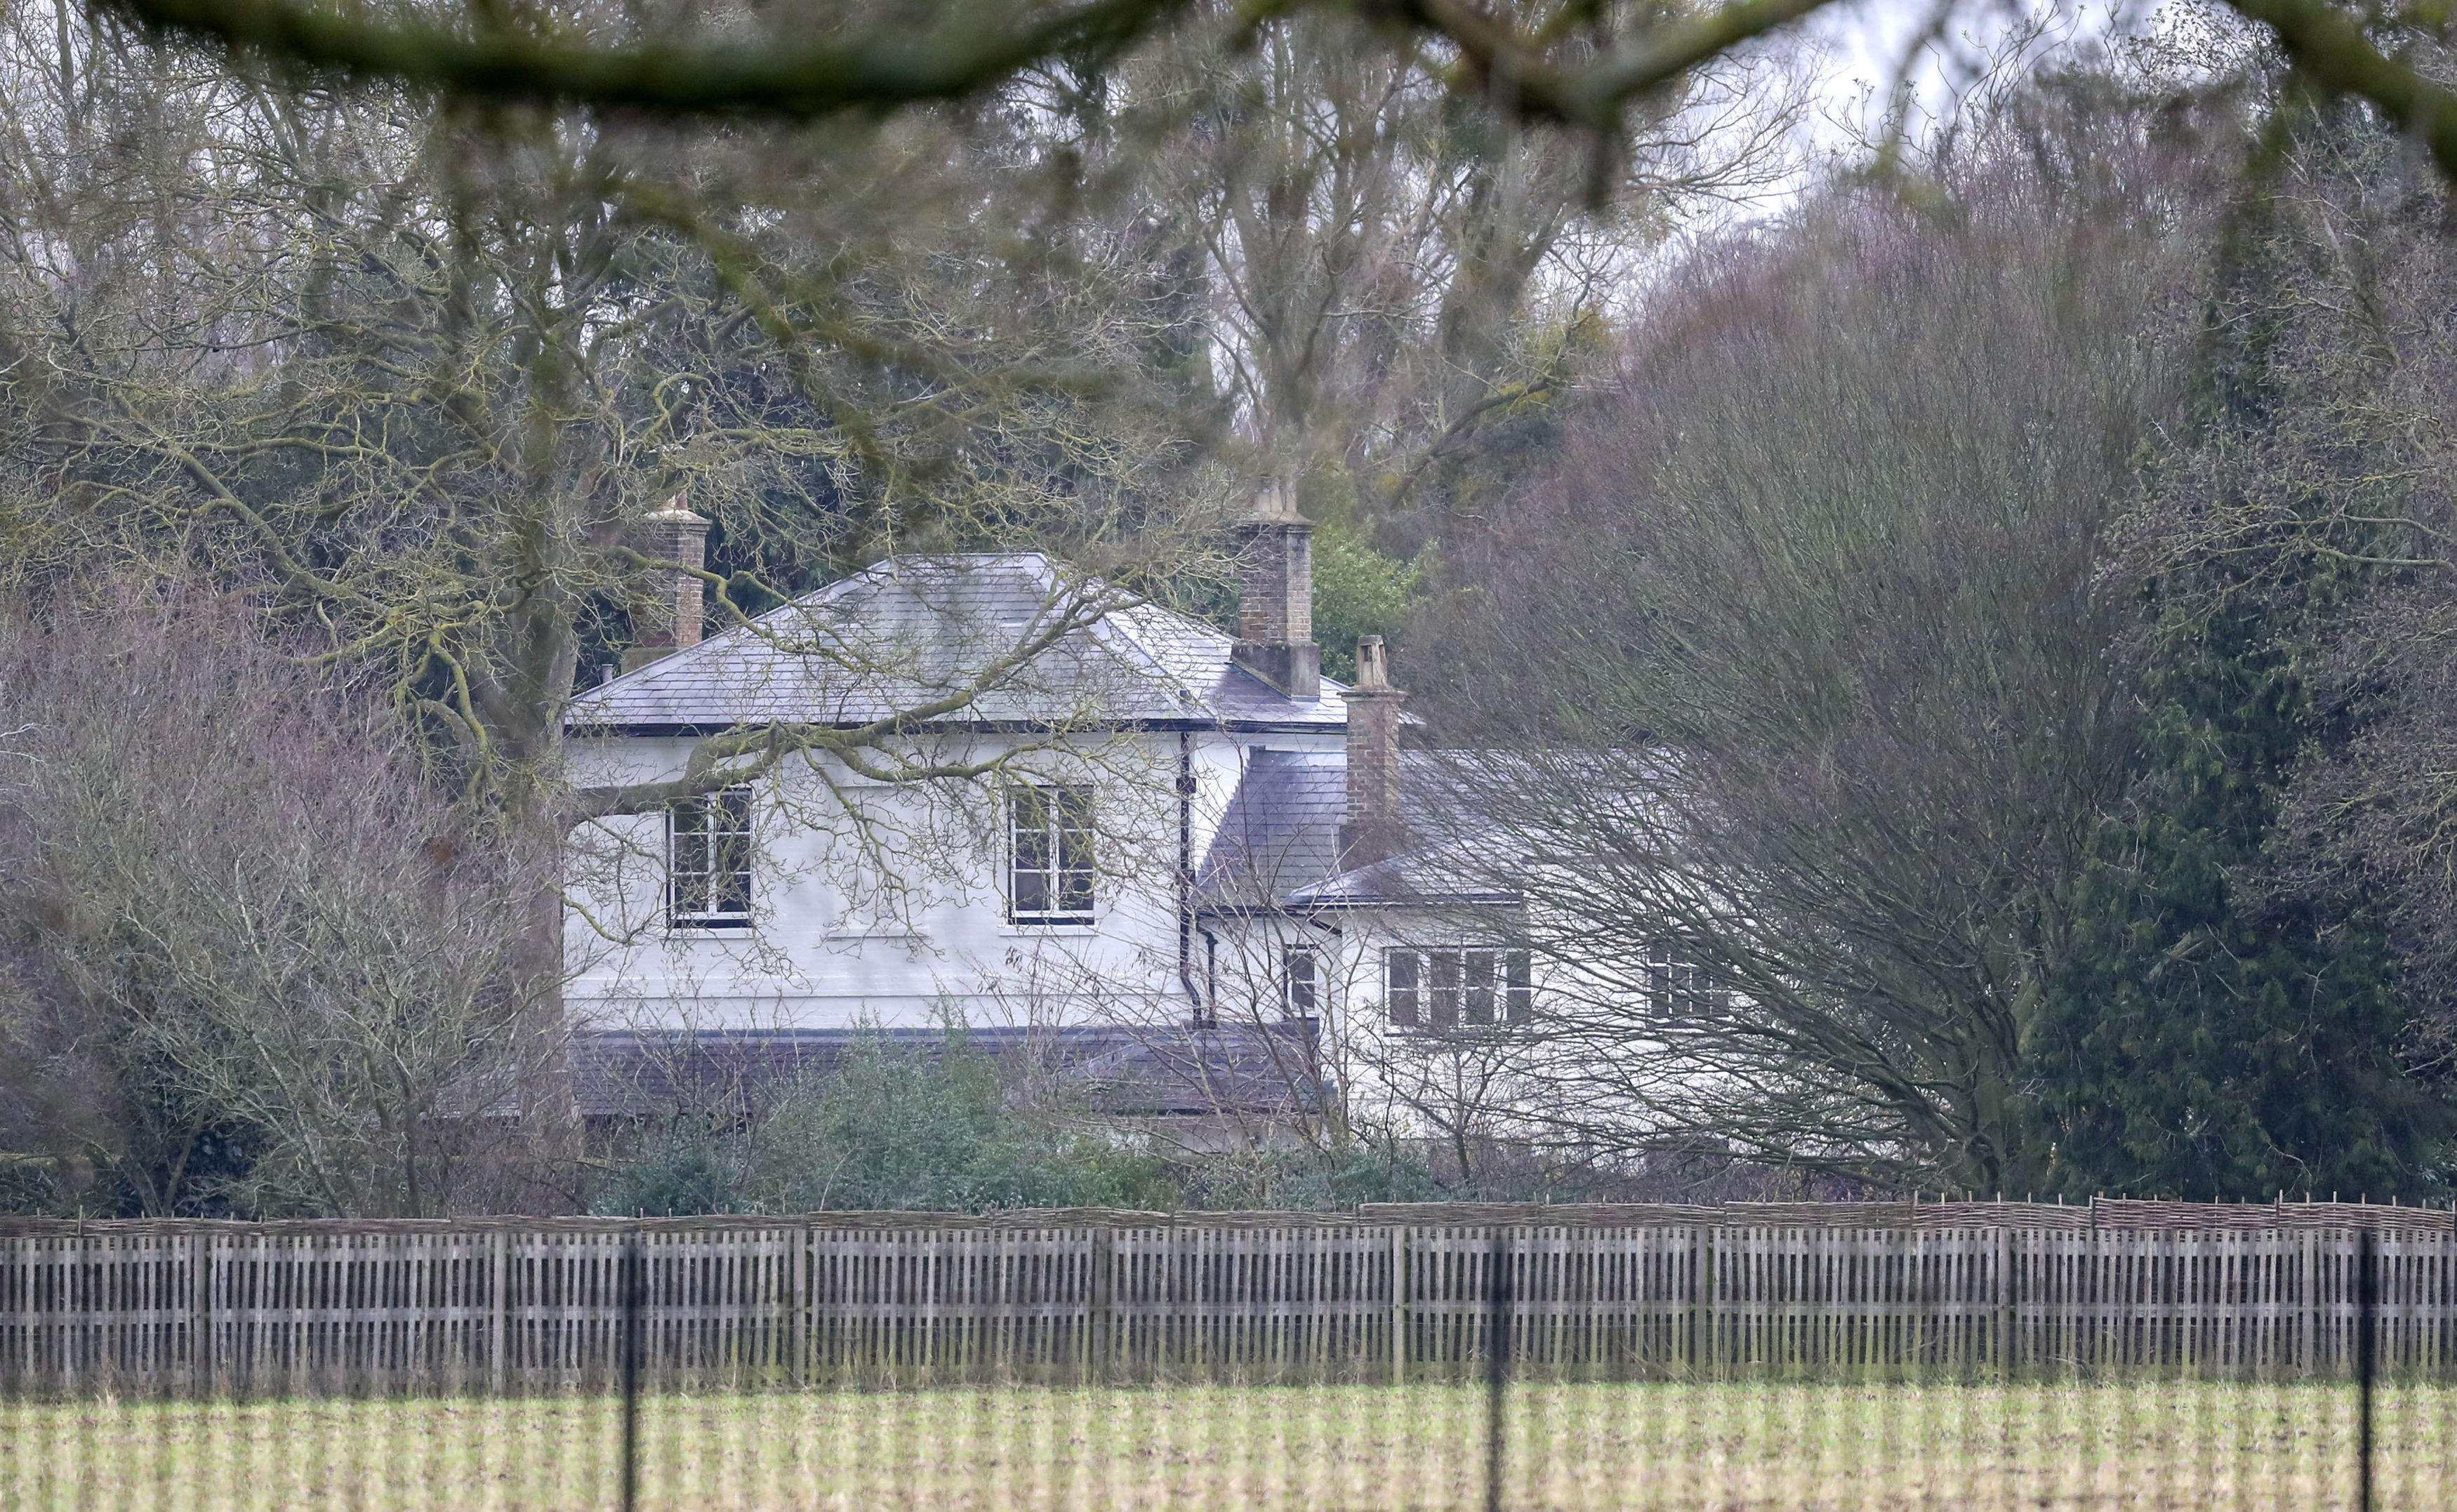 FILE - In this Jan. 14, 2020 file photo, a general view of Frogmore Cottage on the Home Park Estate, Windsor. Prince Harry has repaid 2.4 million pounds ($3.2 million) in British taxpayersu2019 money that was used to renovate the home intended for him and his wife Meghan before they gave up royal duties. A spokesman on Monday, Sept. 7, 2020 Harry has made a contribution to the Sovereign Grant, the public money that goes to the royal family. Photo: AP